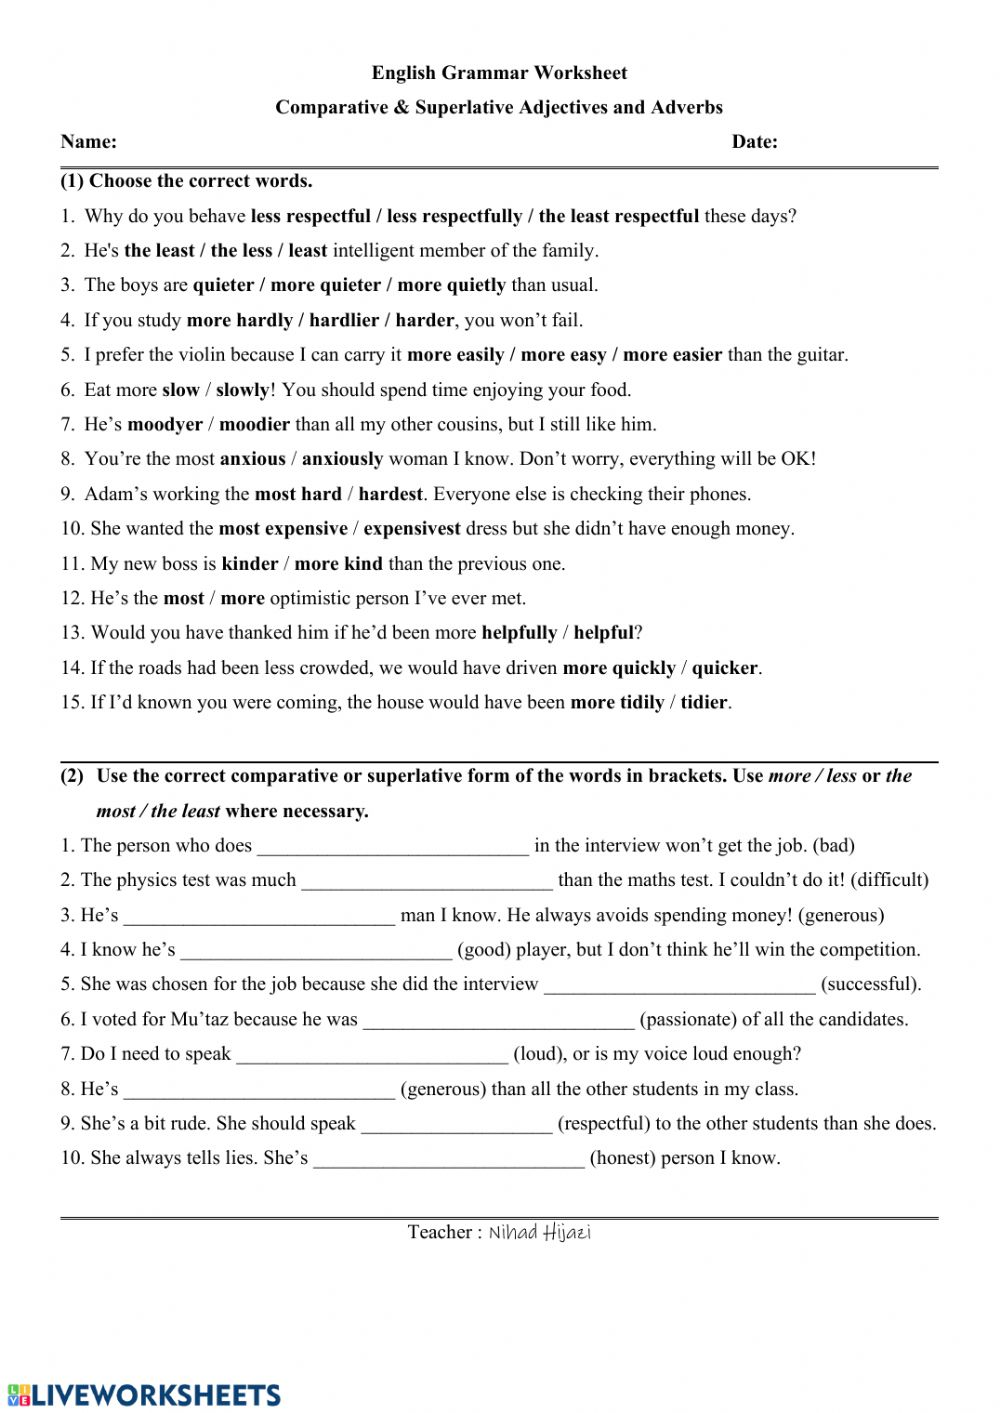 medium resolution of Comparative and Superlative Adjectives and Adverbs worksheet